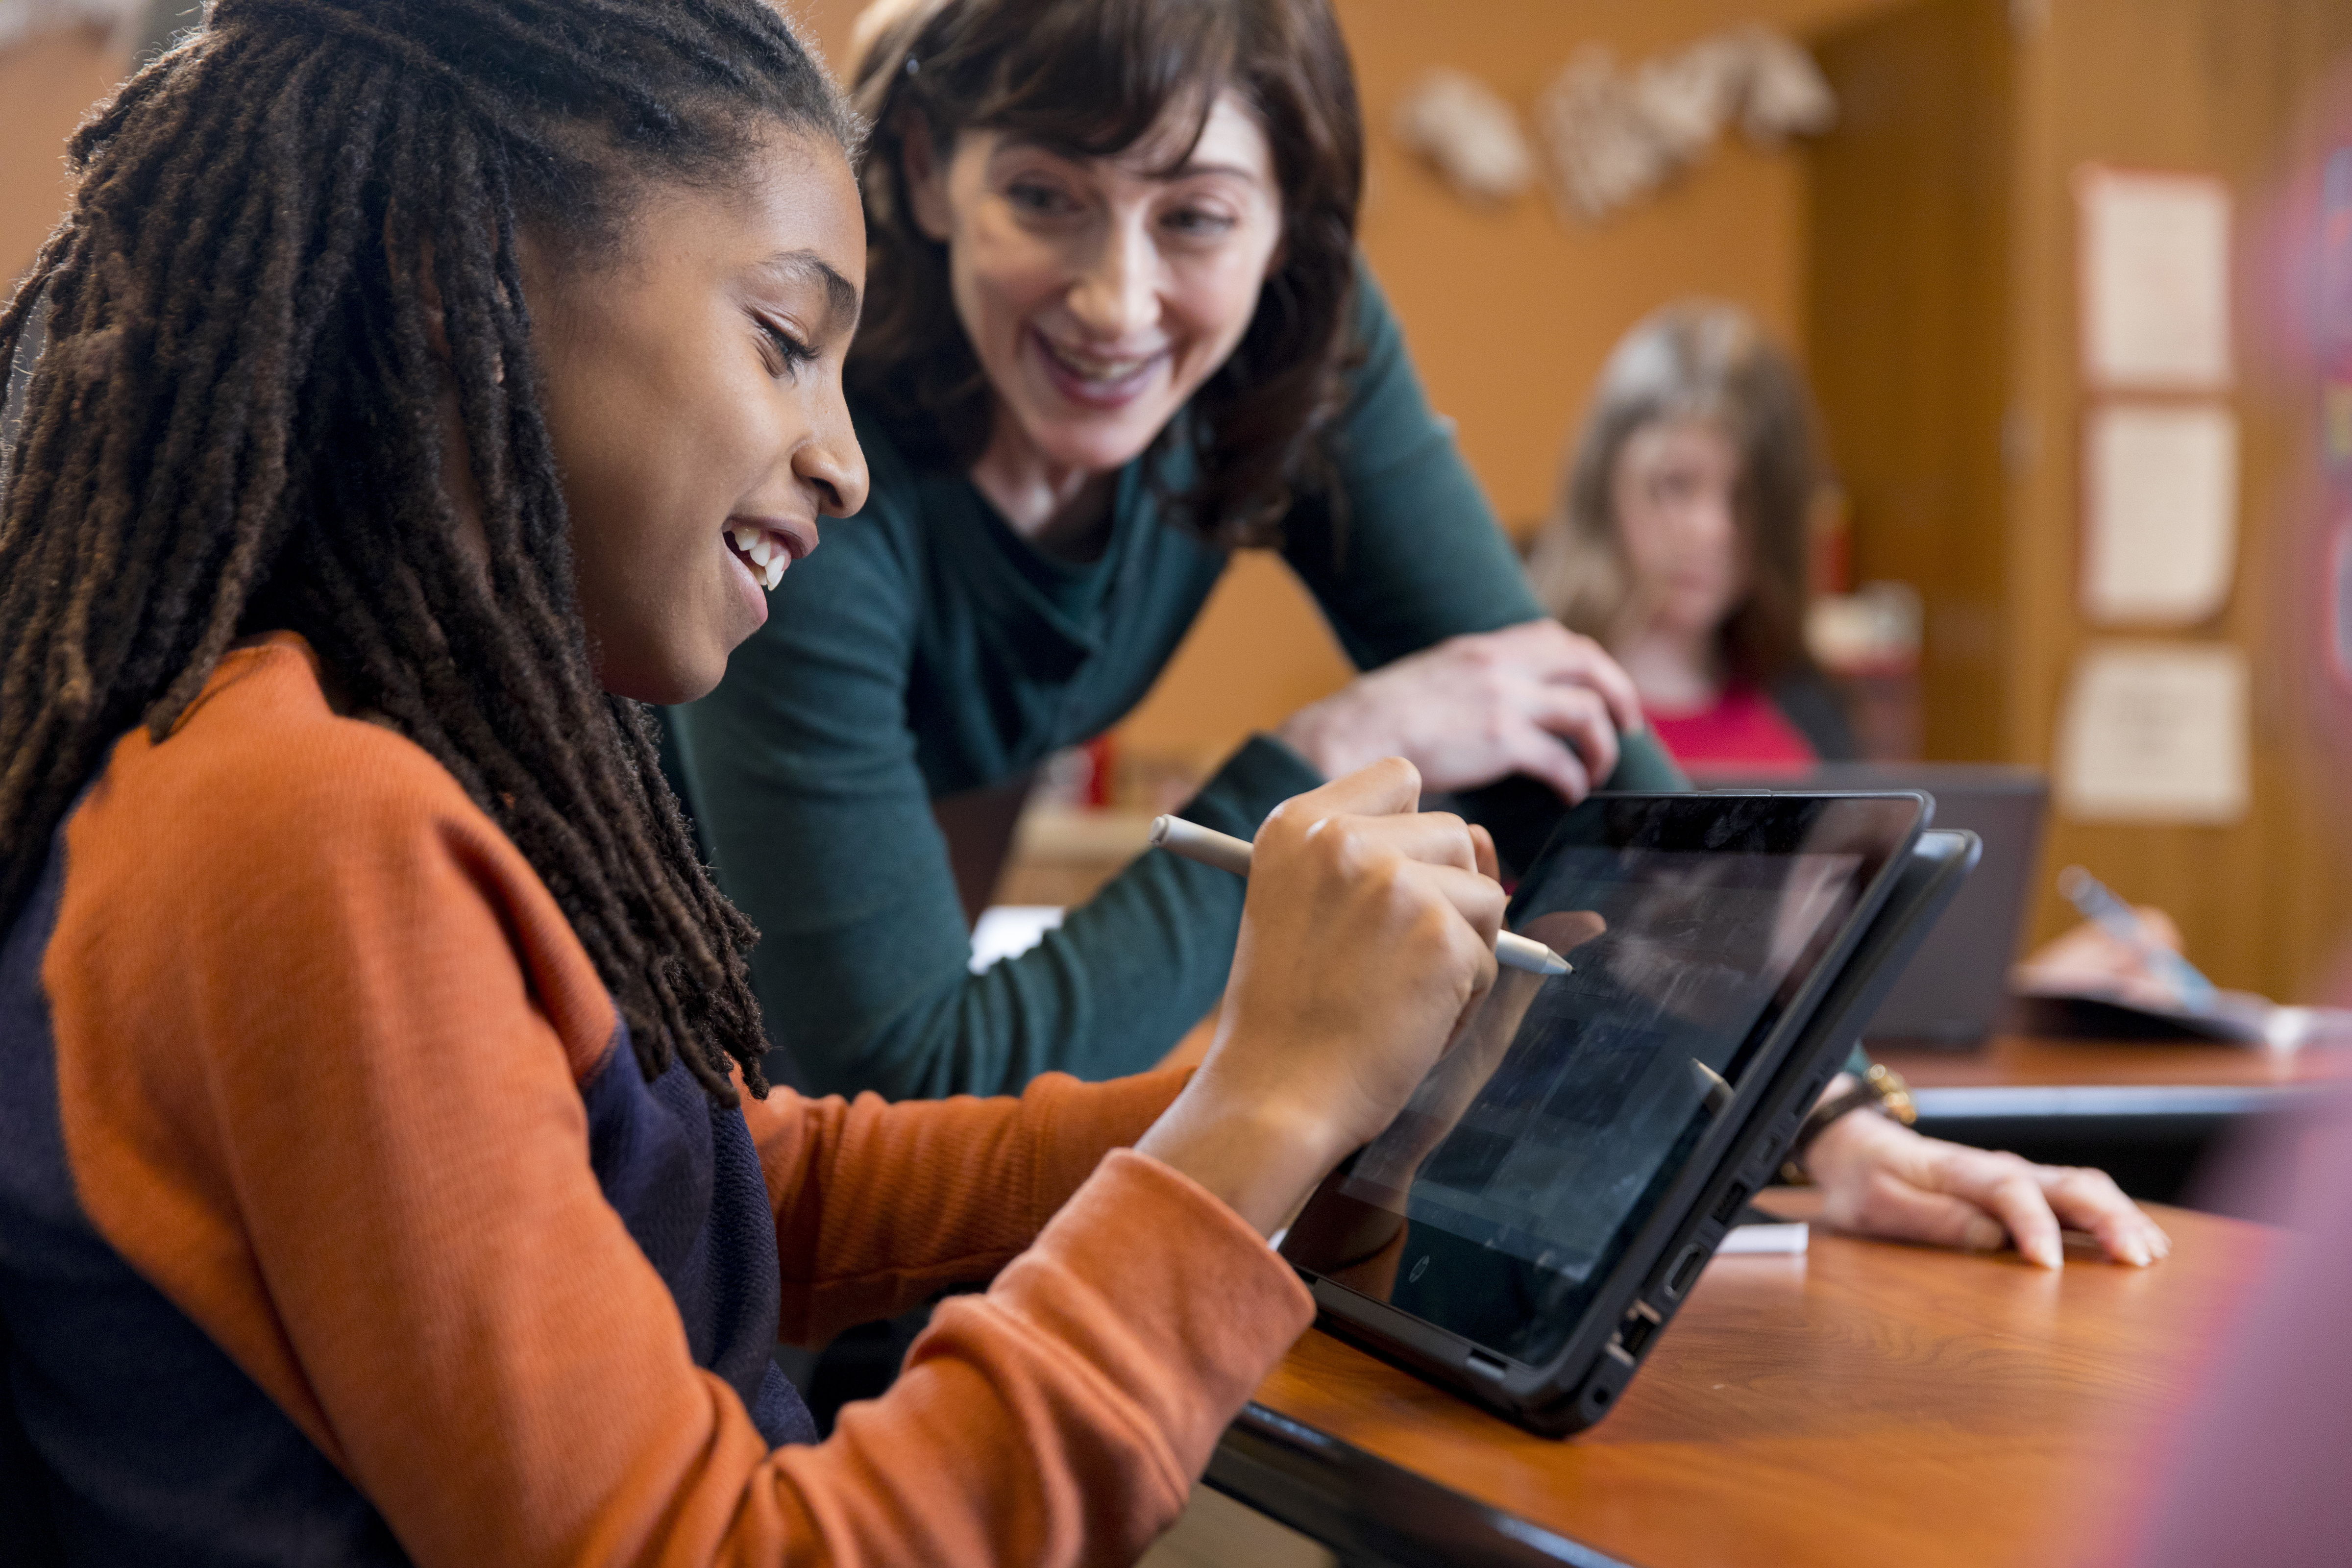 Teacher helping student use a tablet